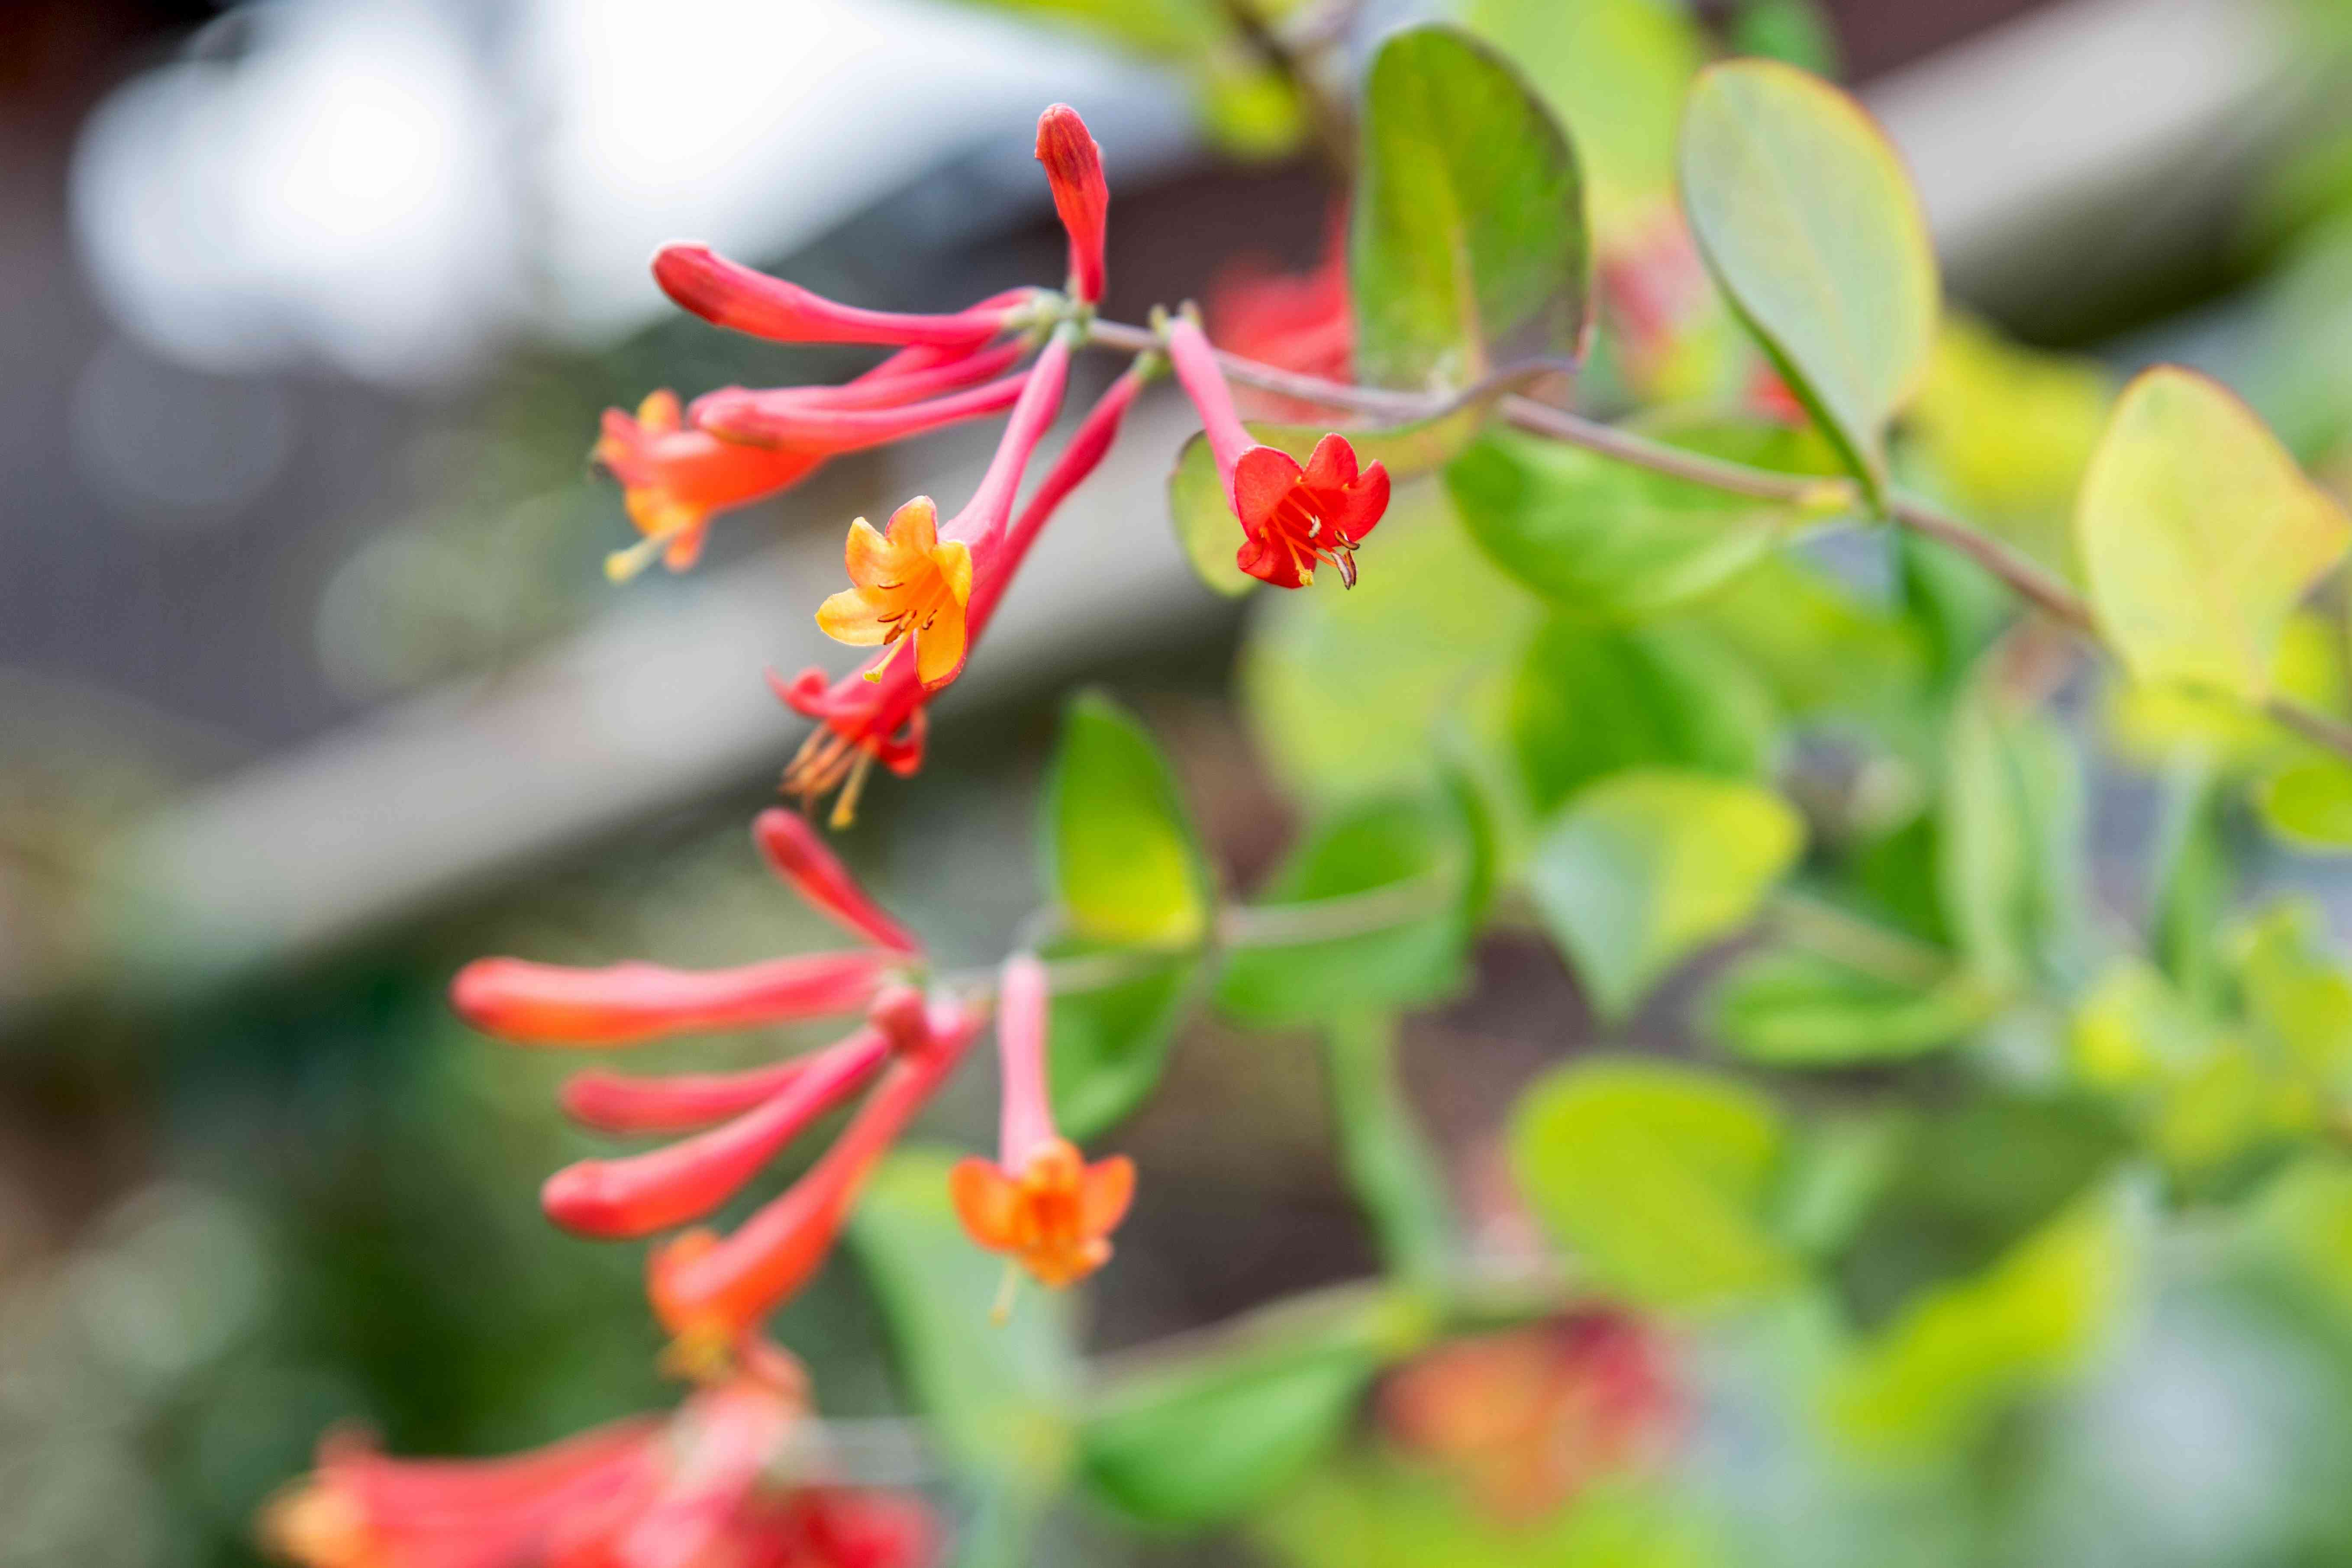 Coral honeysuckle plant branch with red and orange tubular flowers on branch closeup